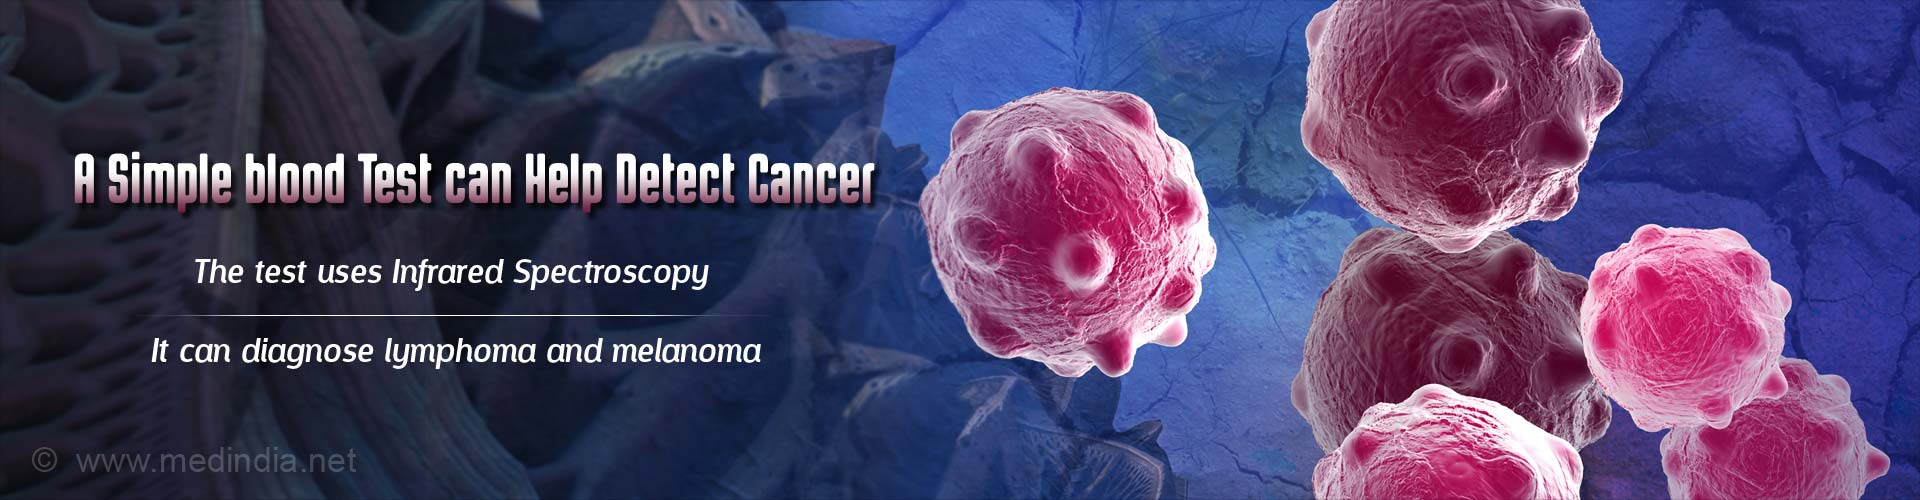 Simple Blood Tests That Can Diagnose Two Cancer Types